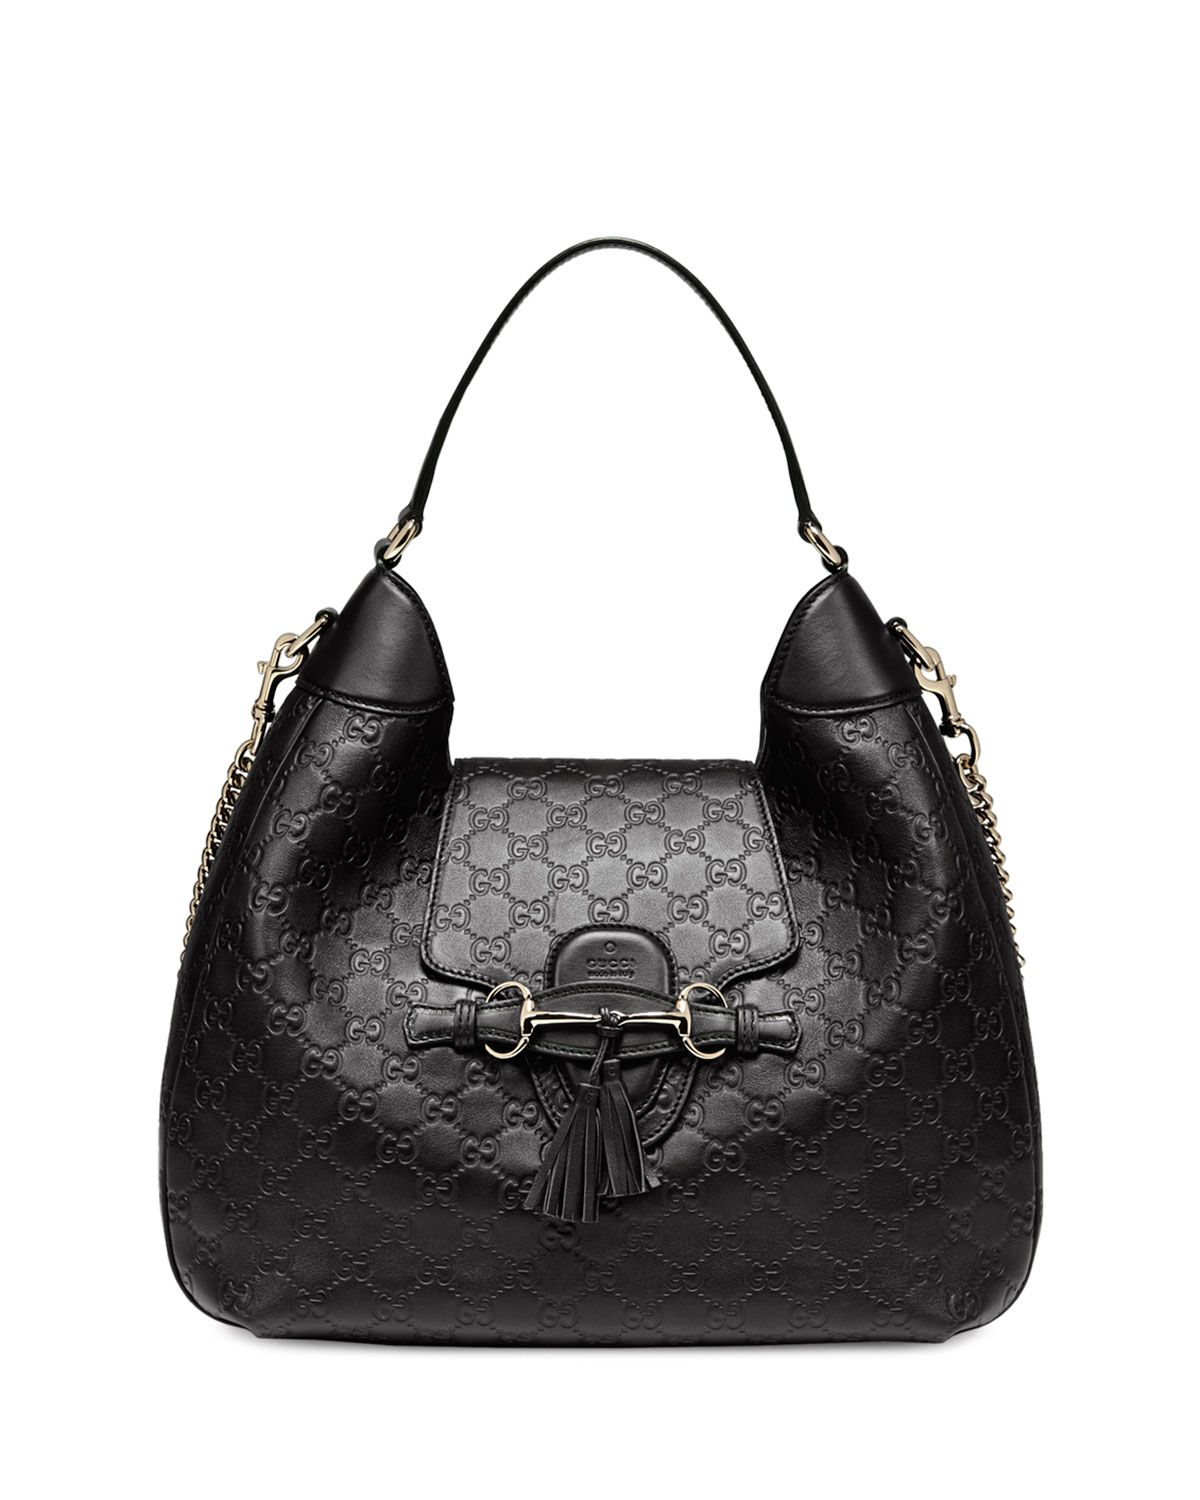 9c7f6b823 Gucci Emily Guccissima Leather Hobo Bag, Black | Gucci Bags | Bags ...